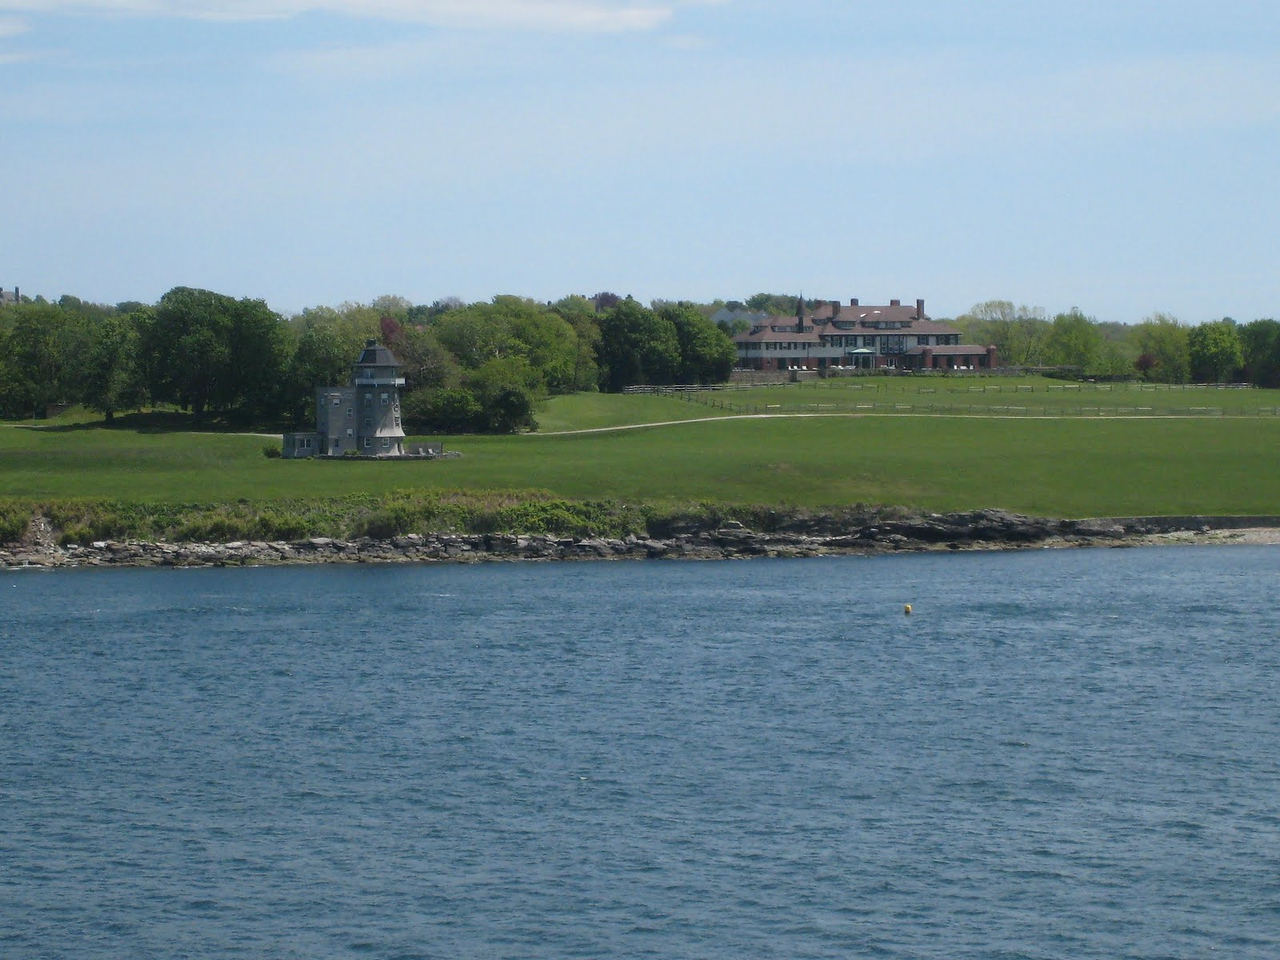 Newport, Rhode Island - Hammersmith Farm (former home of the Bouvier family and site of wedding reception for JFK and Jackie)